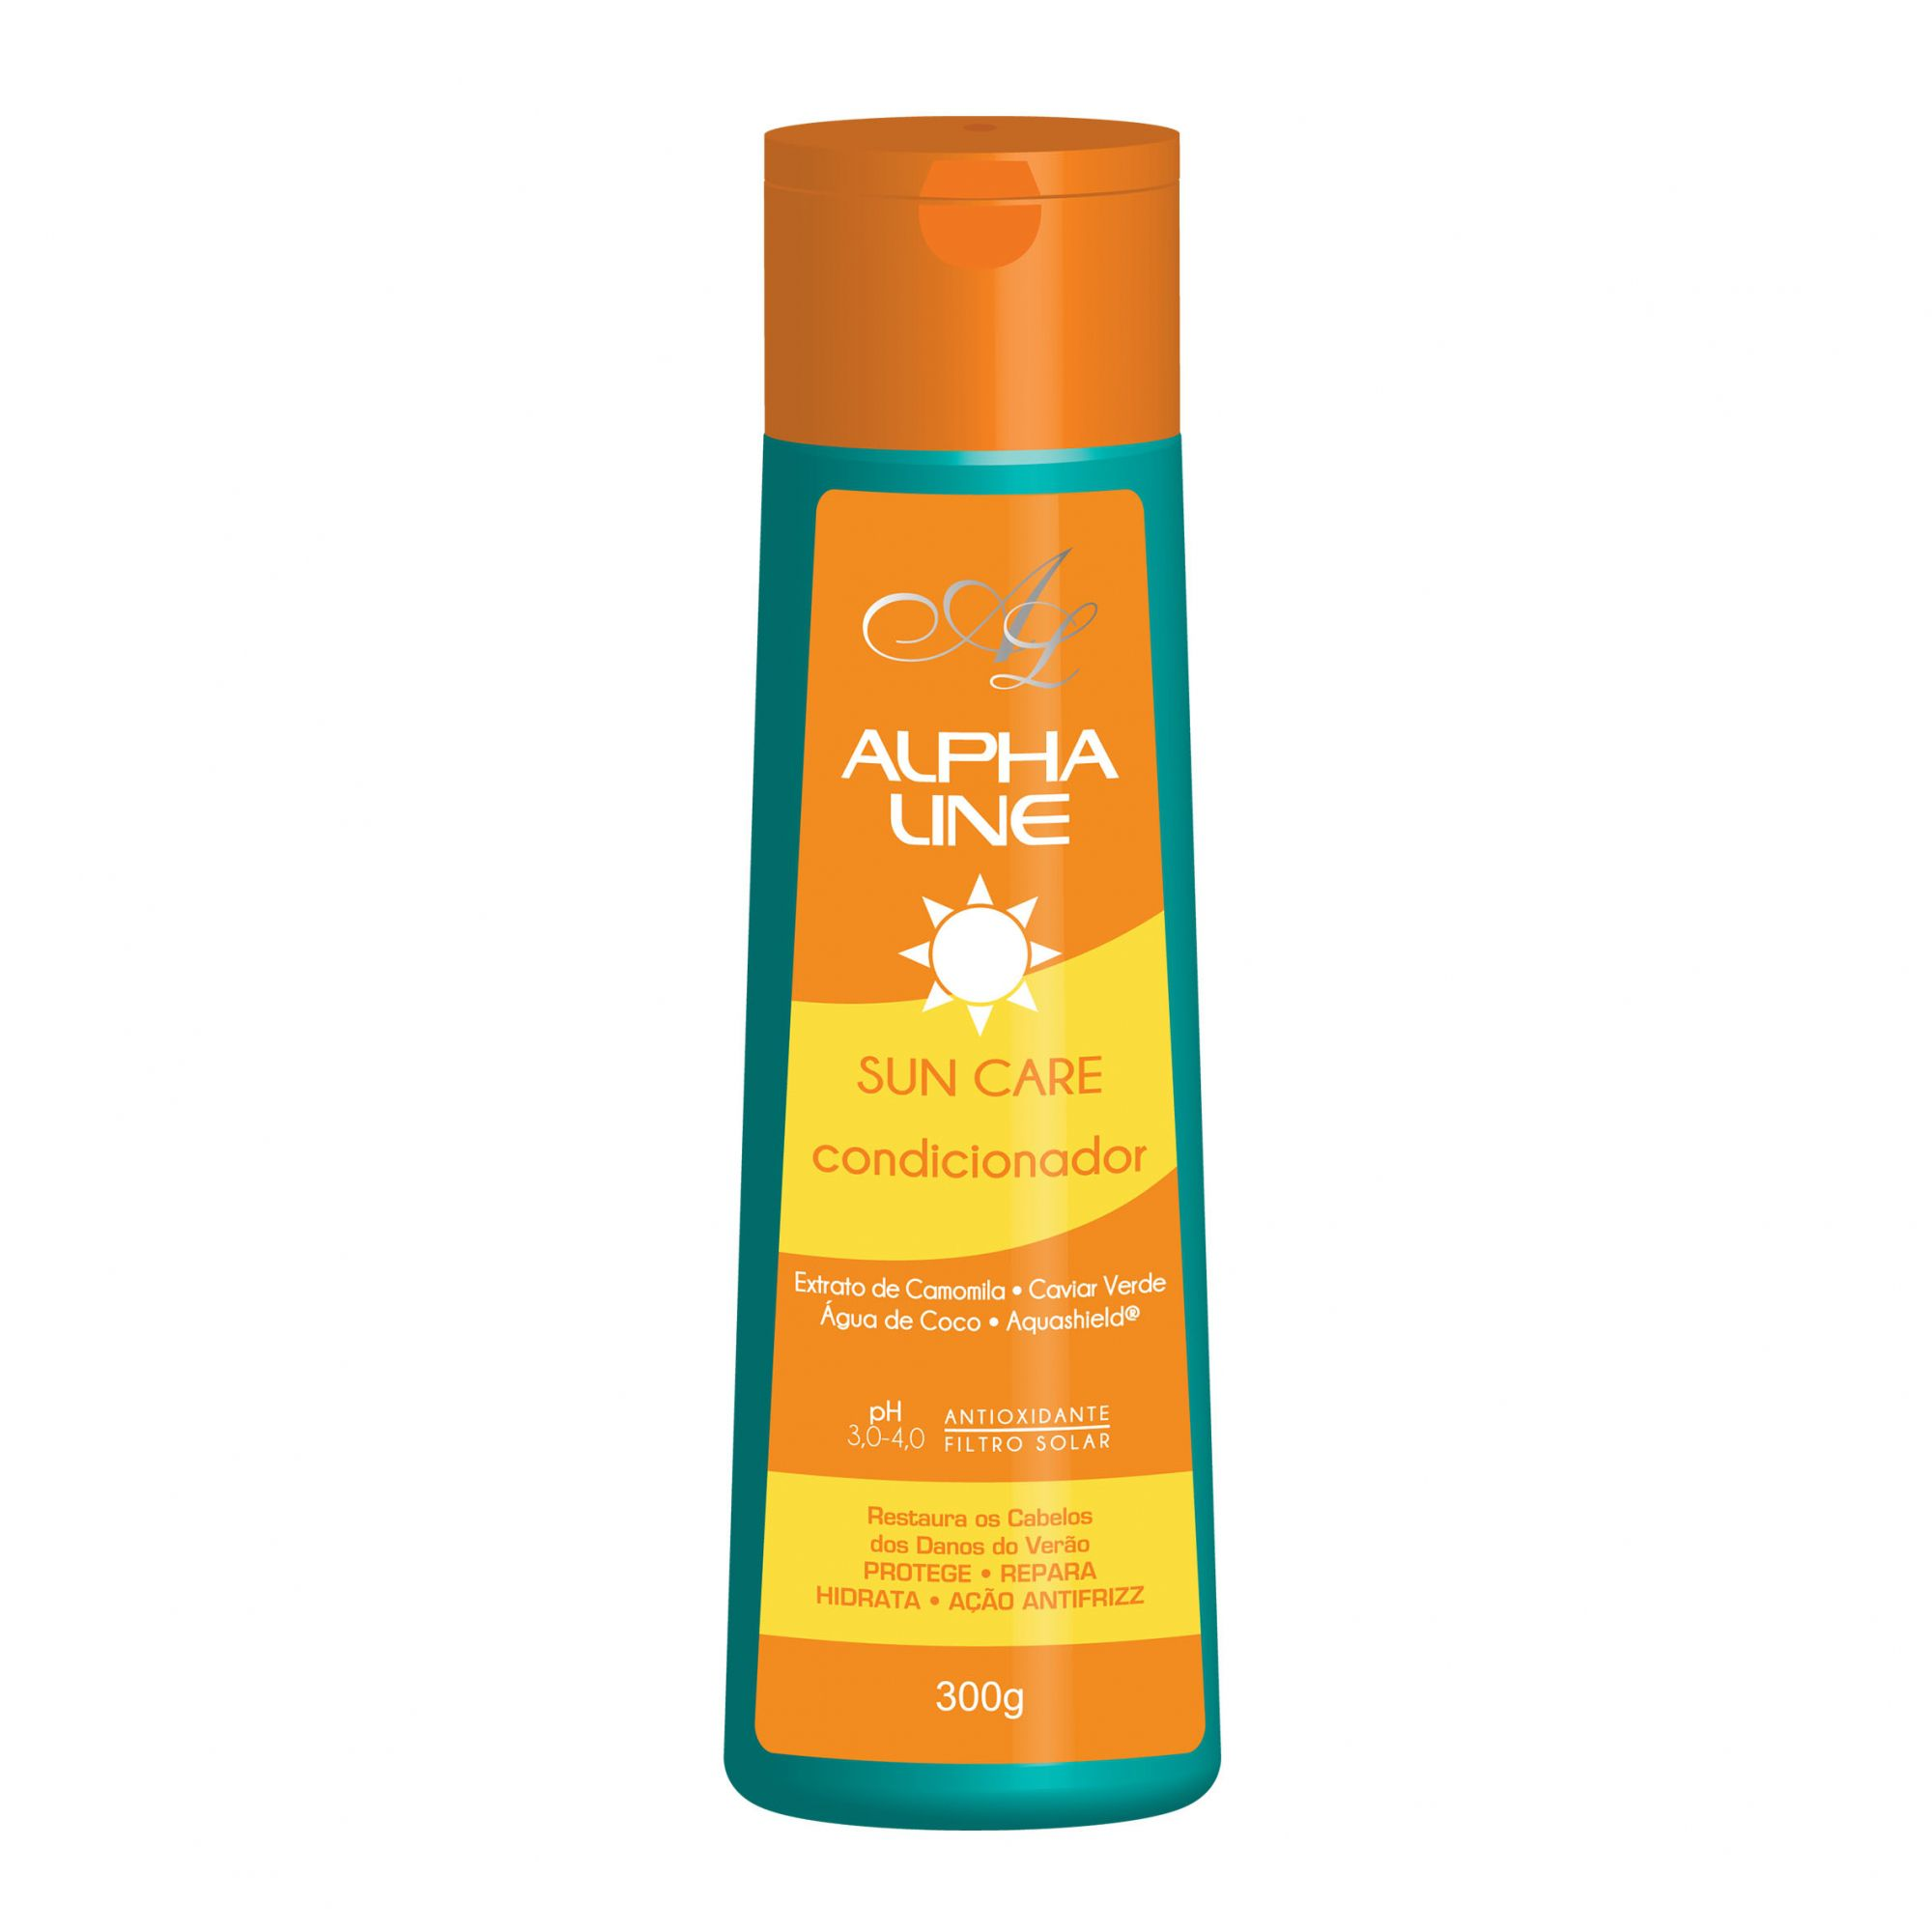 Alpha Line Condicionador Sun Care 350g.